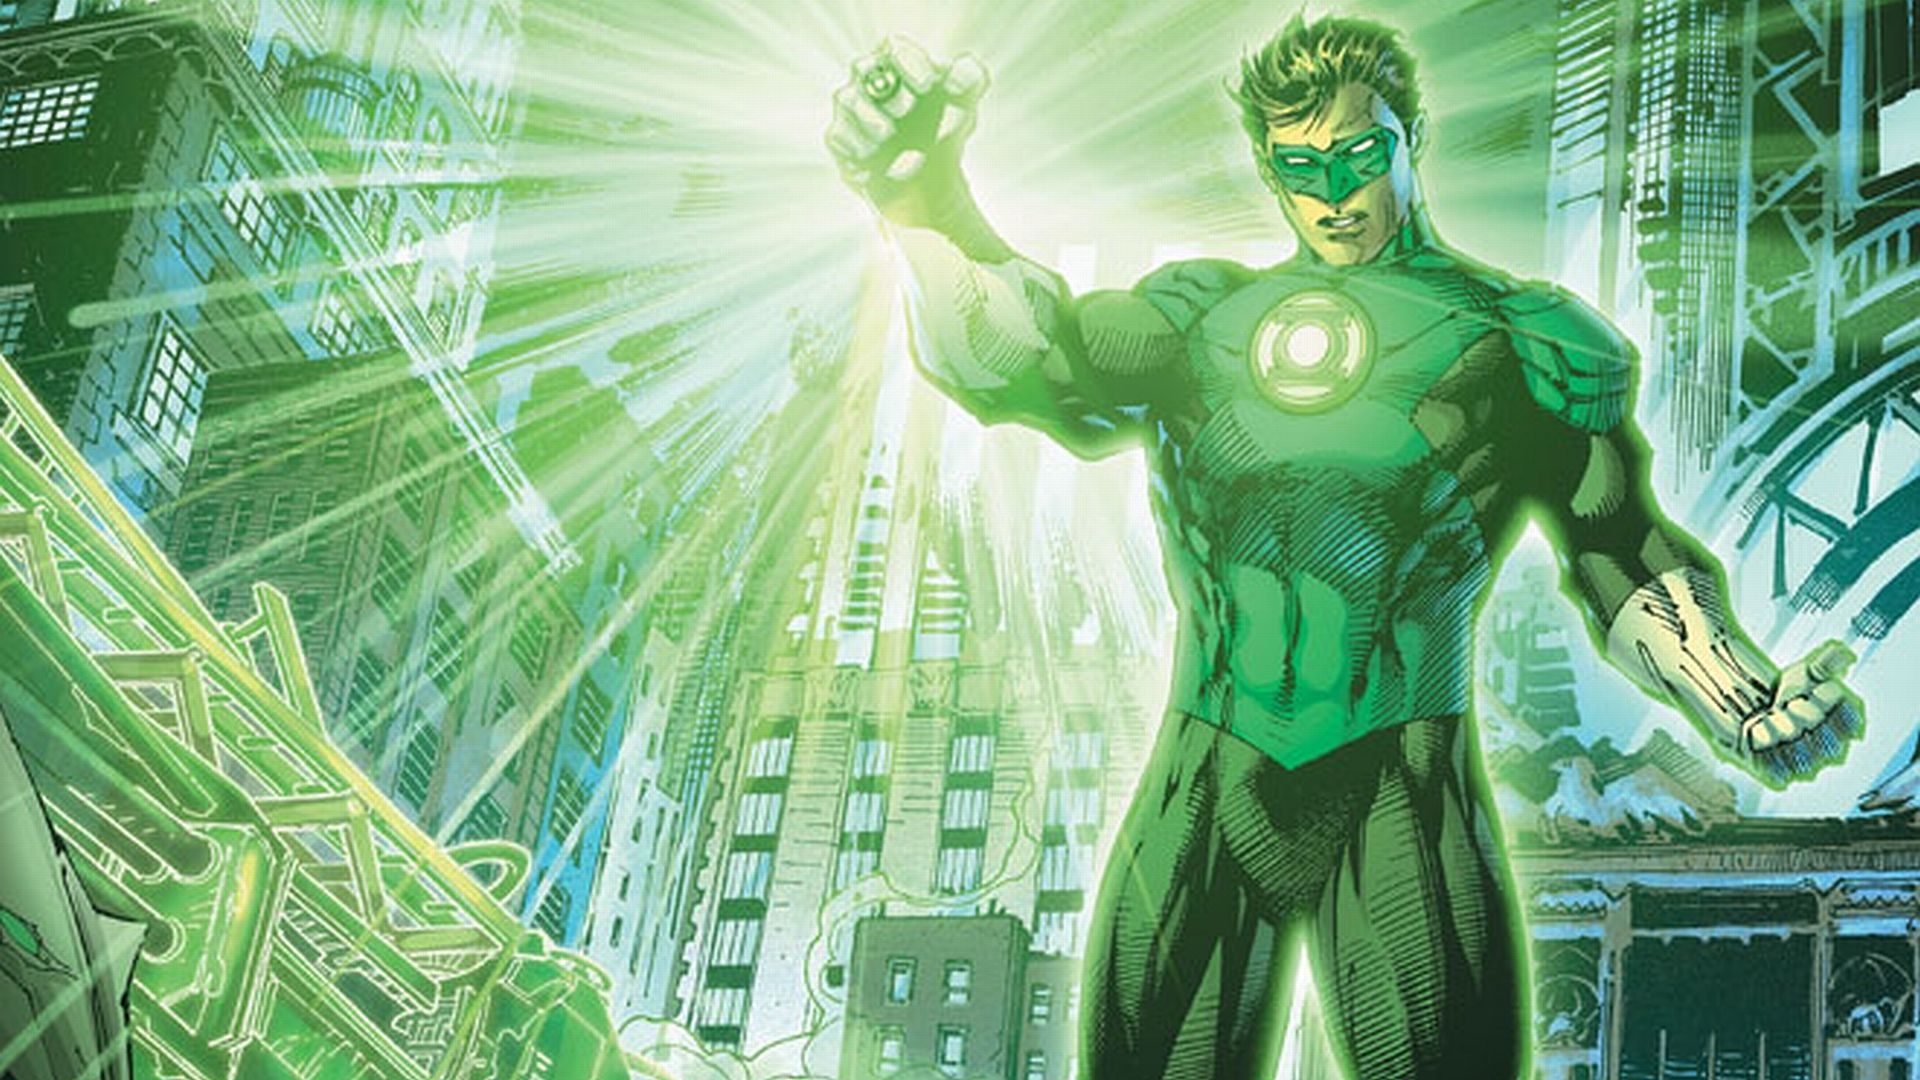 Green Lantern New 52 Wallpapers   Top Green Lantern New 52 1920x1080